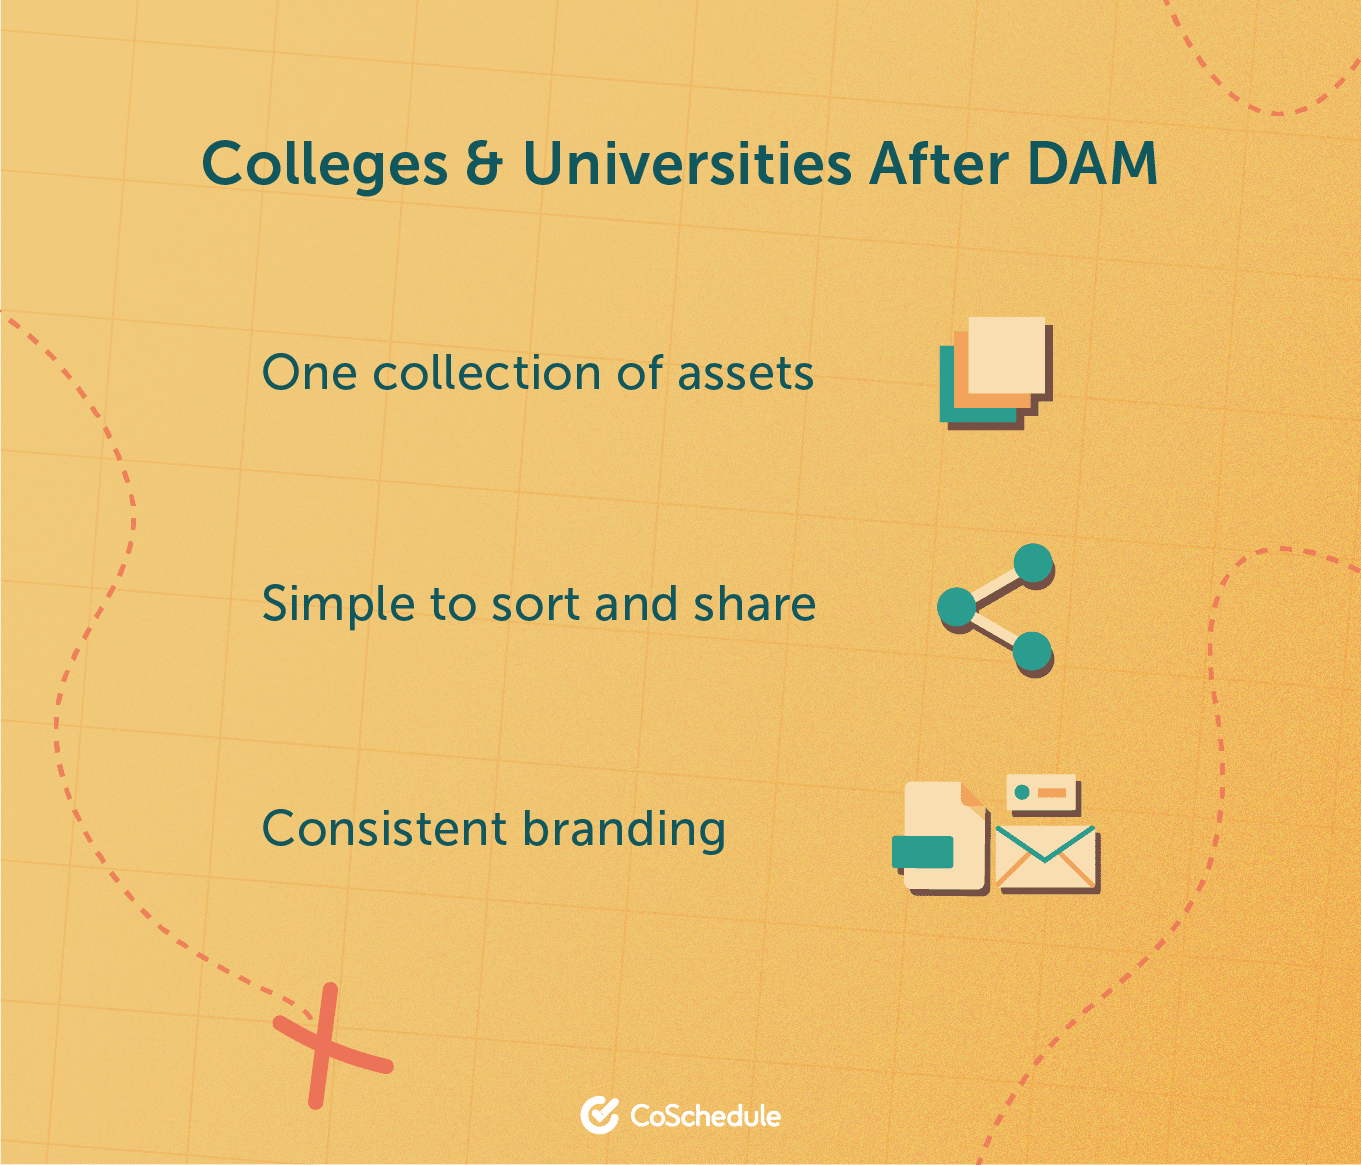 What colleges and universities look like after DAM.